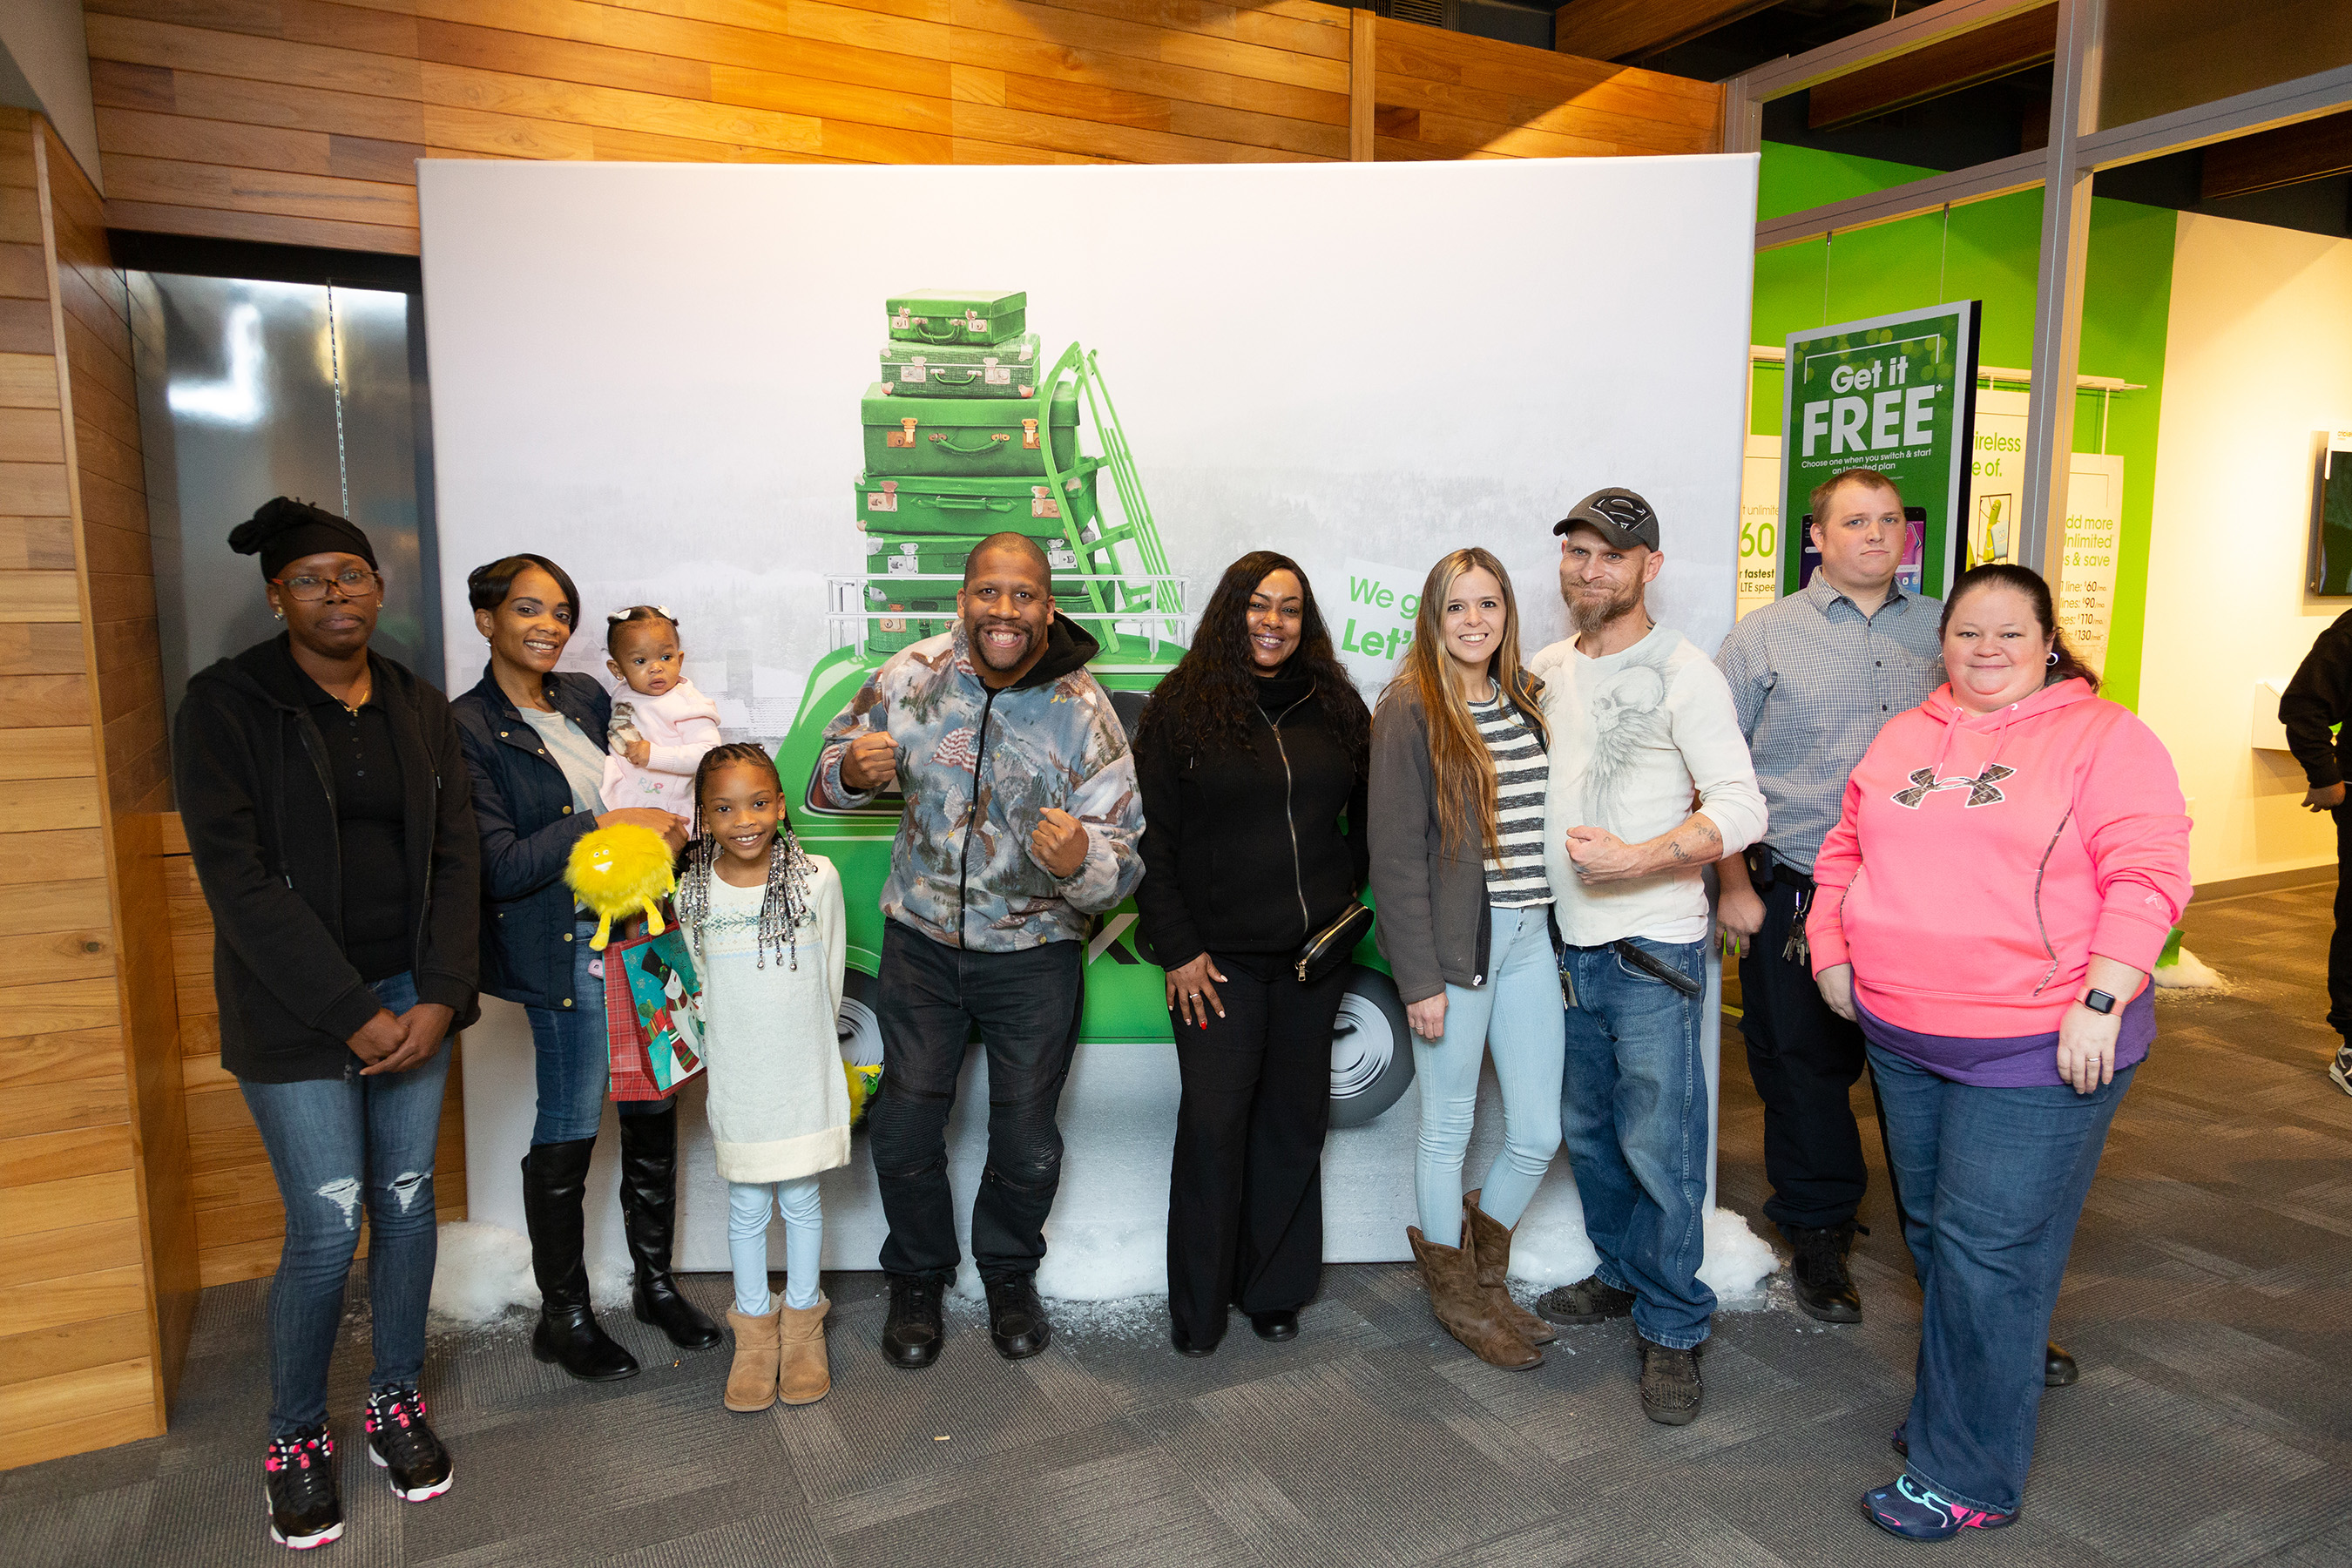 The 144 winning families across the country not only received over $1,000 in gifts. They also made new friends in Cricket Wireless and each other.